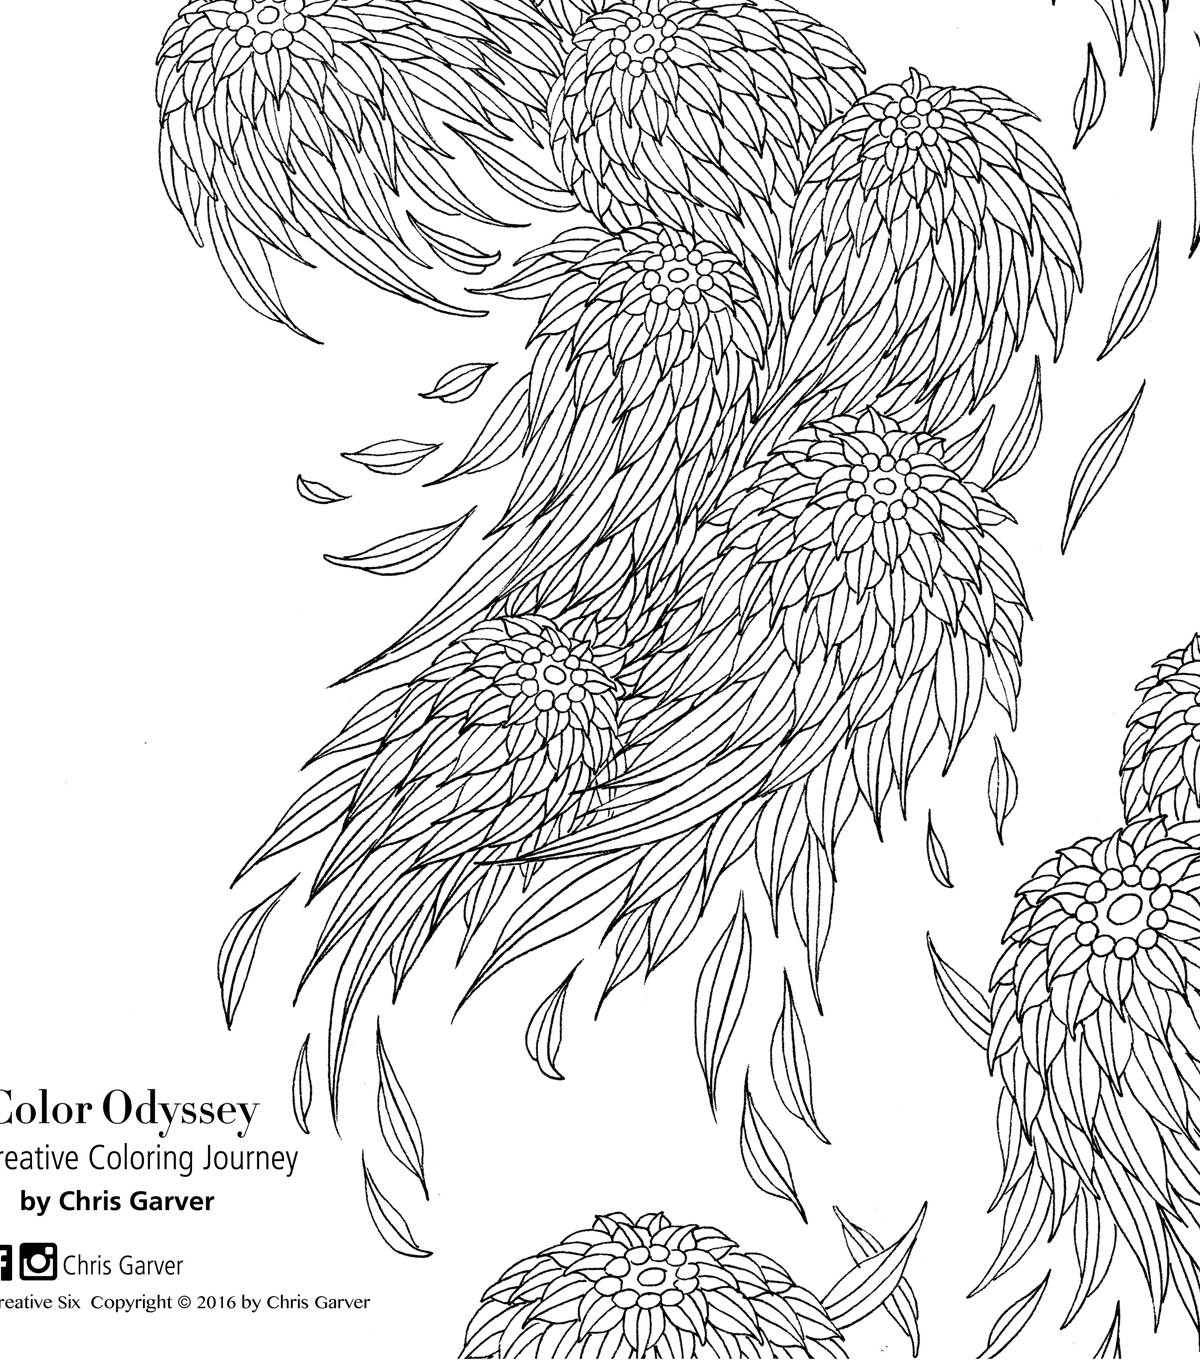 Color Odyssey: A Creative Coloring Journey Coloring Book